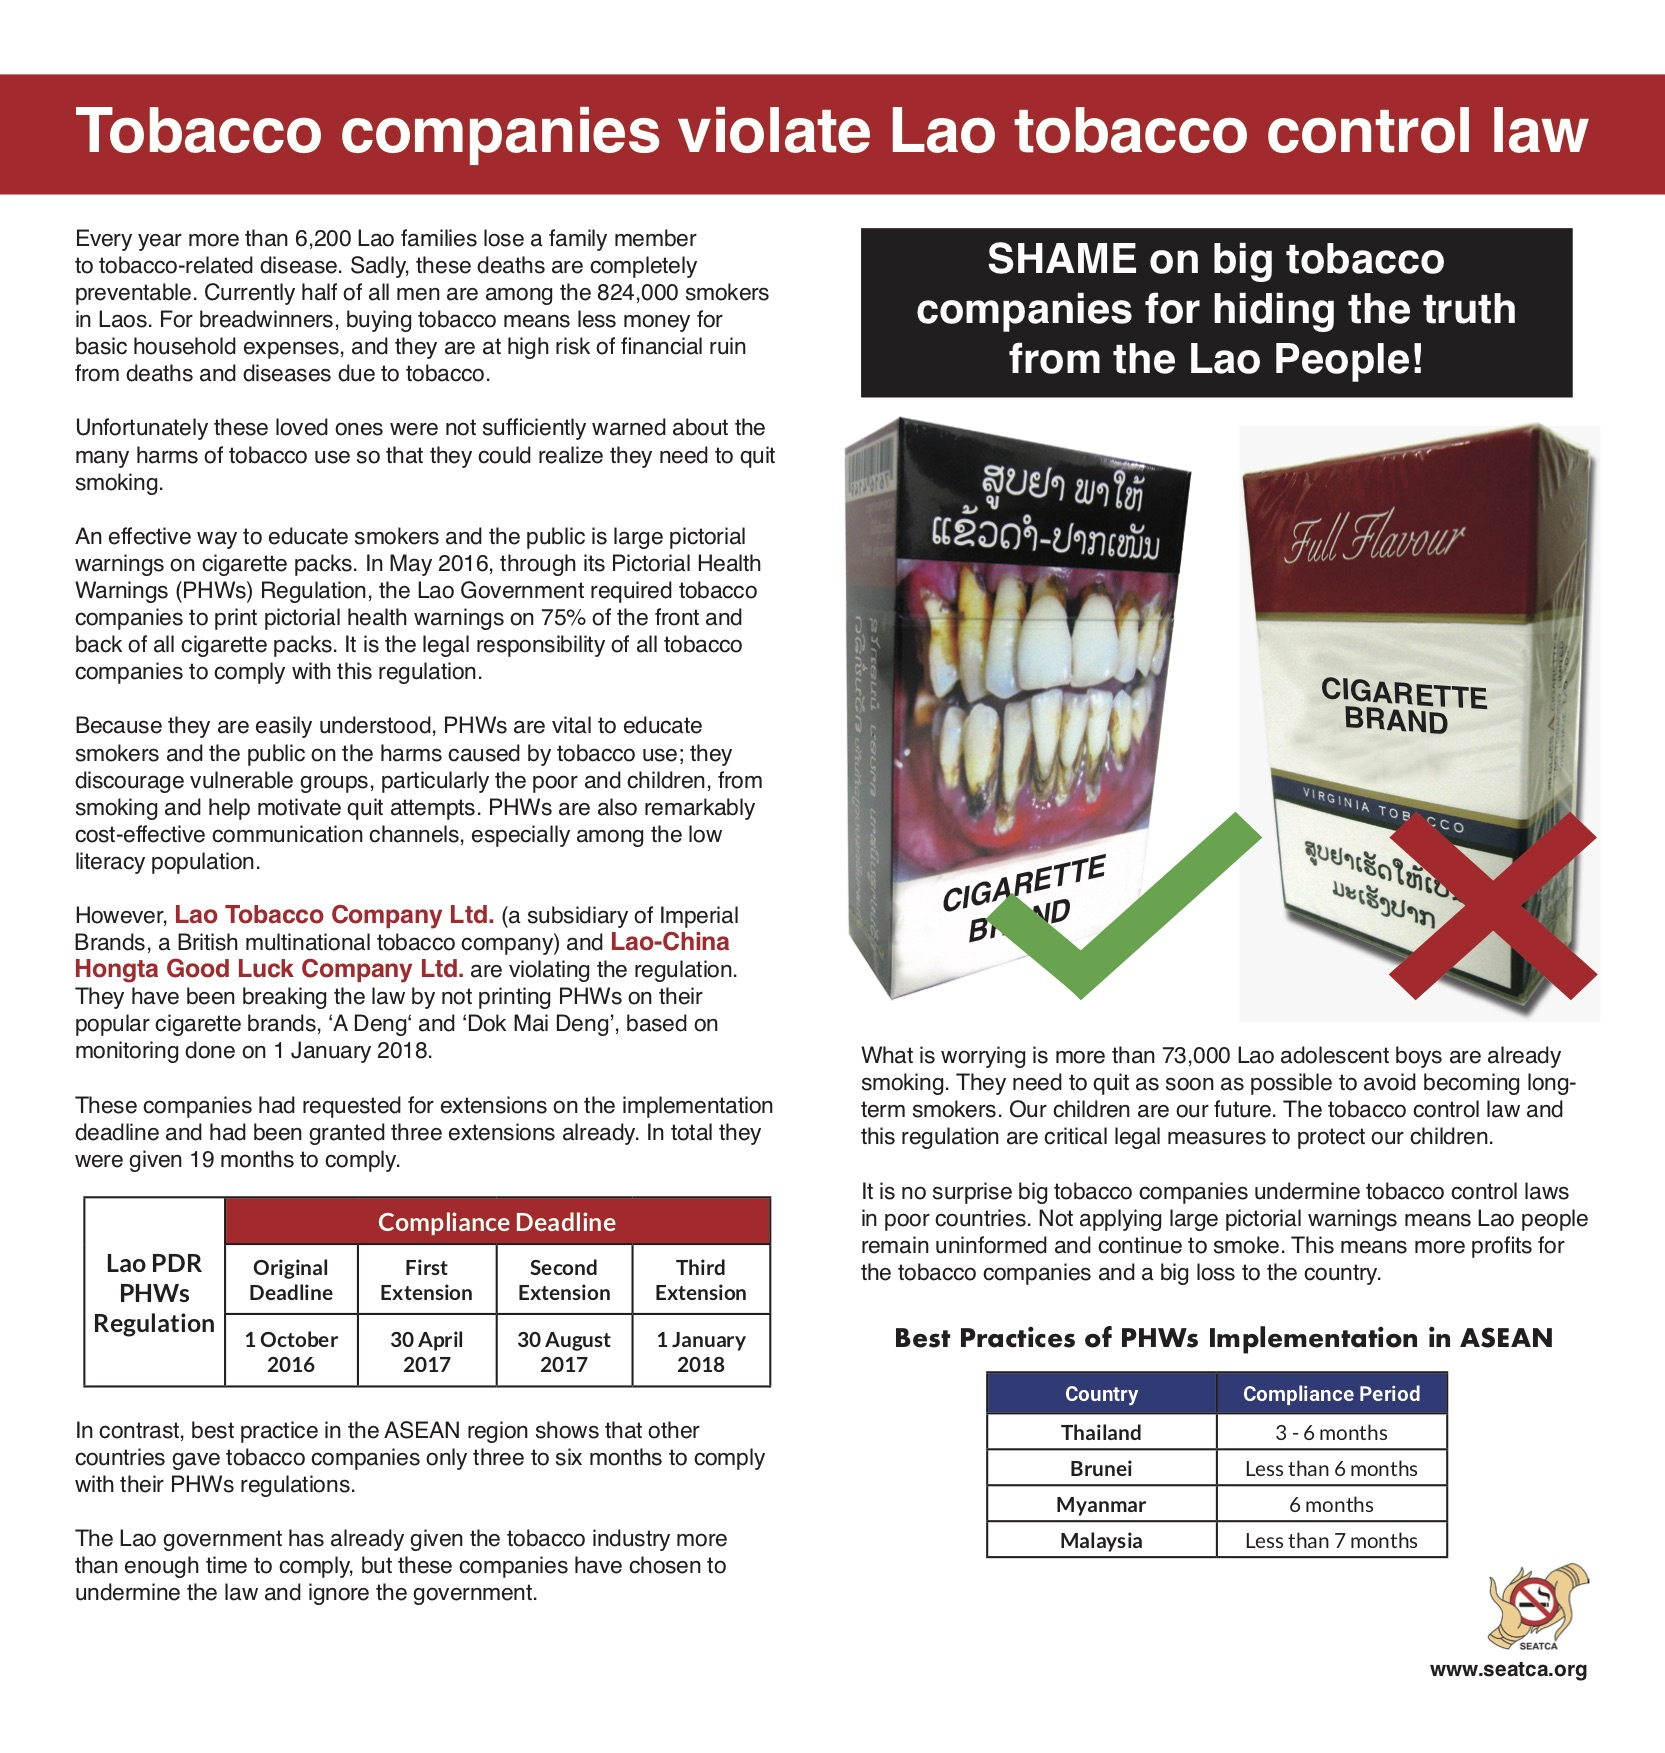 tobacco companies held responsible Should tobacco companies be held responsible for smoking related diseases discuss should tobacco companies be held responsible for smoking related diseases within the hot debates - the big fight forums, part of the management students voices ( mba,bms,mms,bmm,bba) category originally.